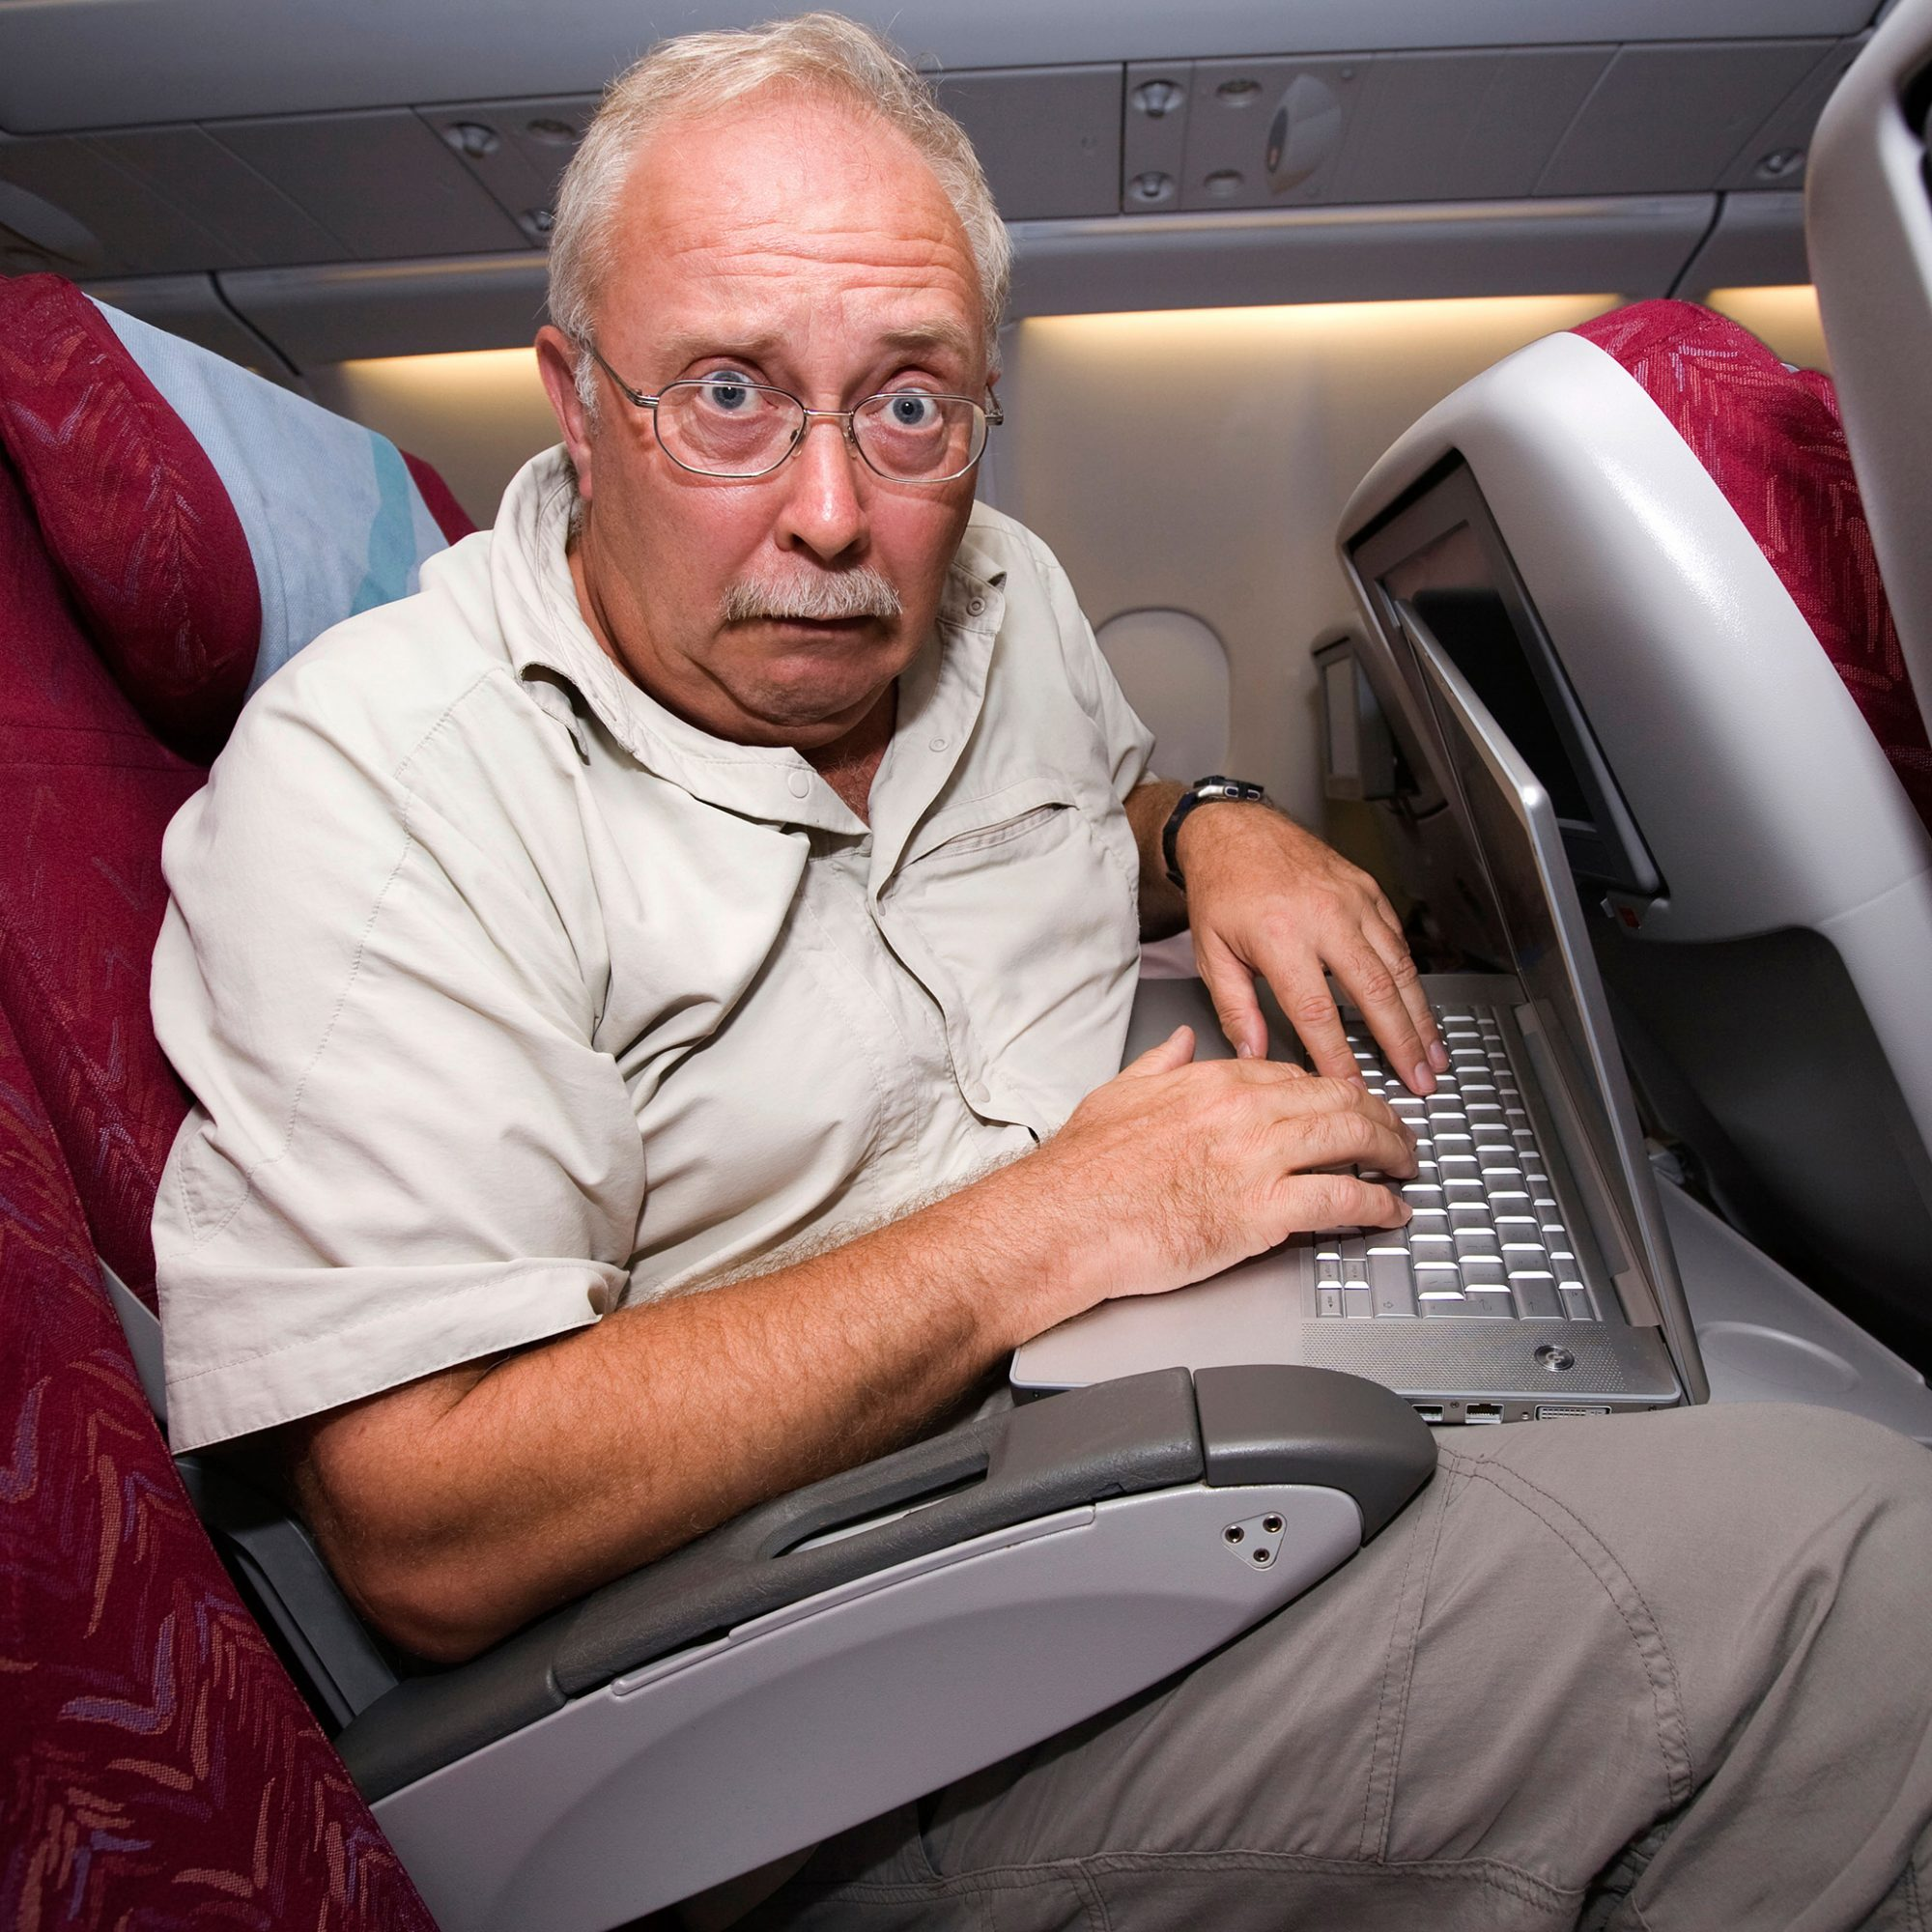 FWX BETTER MIDDLE SEAT ON AN AIRPLANE